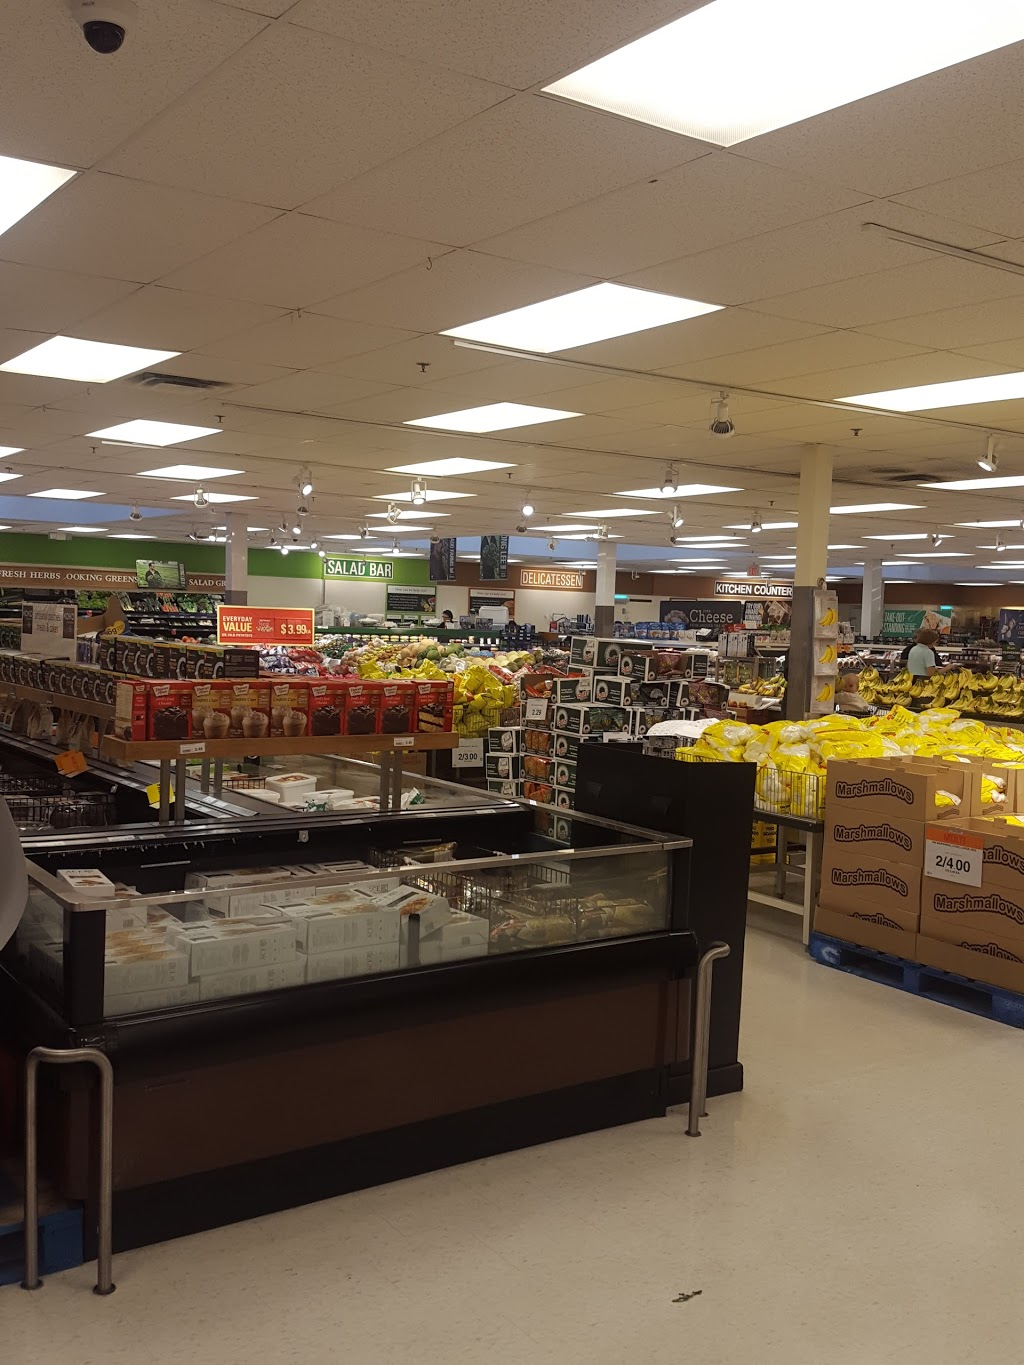 Mikes Your Independent Grocer   bakery   1341 Broadway Ave, Regina, SK S4P 1E5, Canada   3065691059 OR +1 306-569-1059